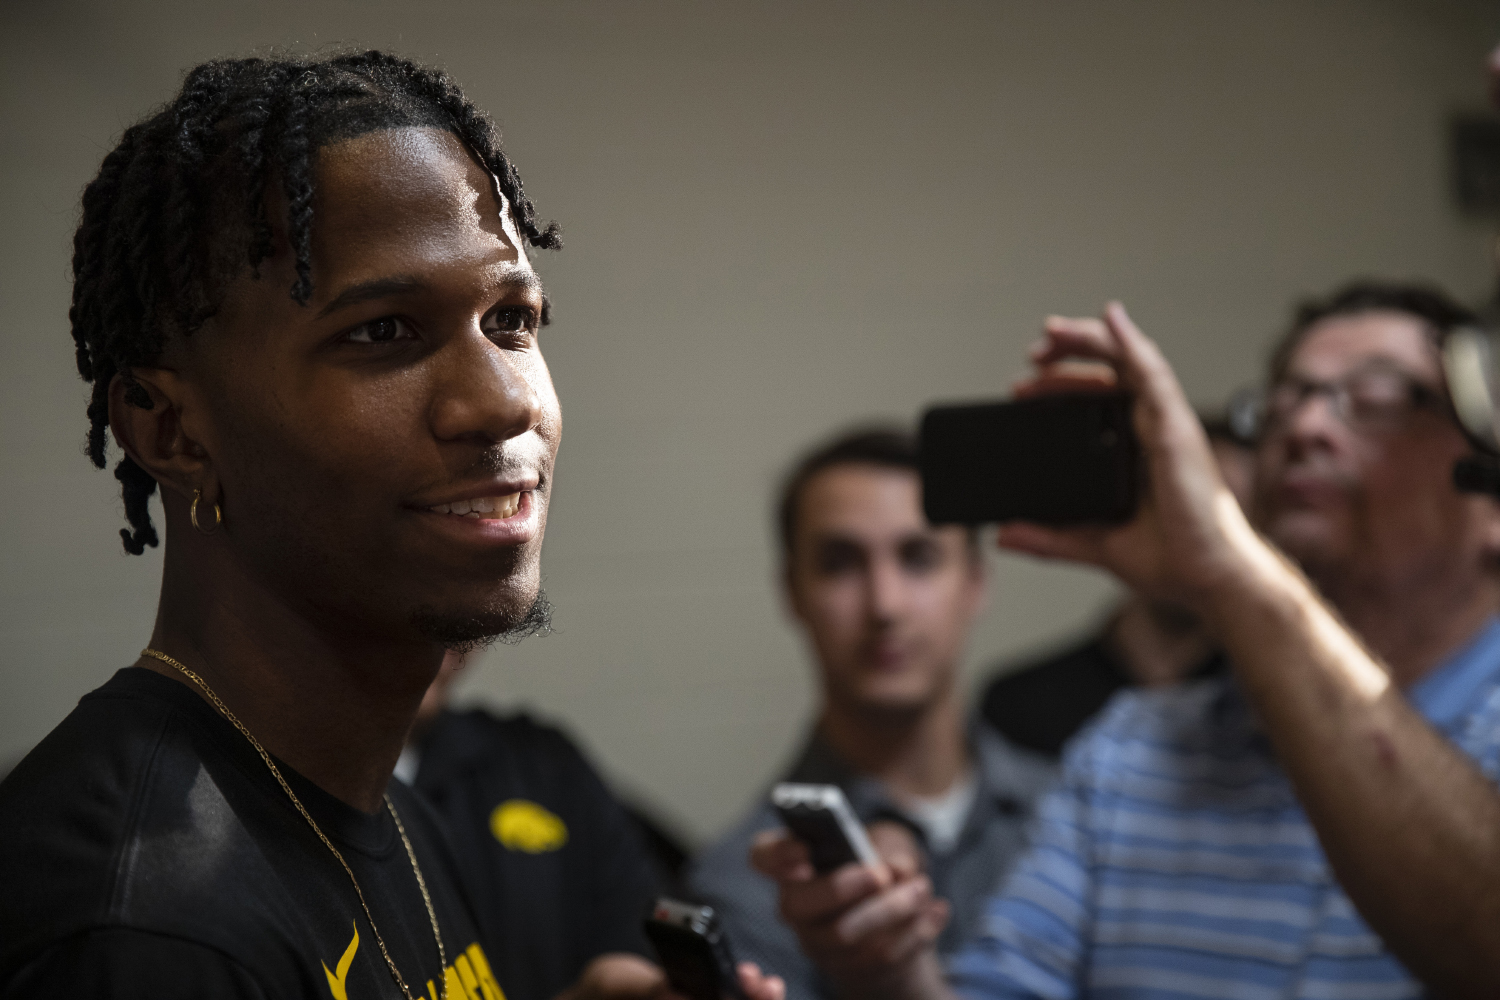 Bakari Evelyn speaks with members of the press during an Iowa men's basketball media availability at Carver-Hawkeye Arena on July 24, 2019.